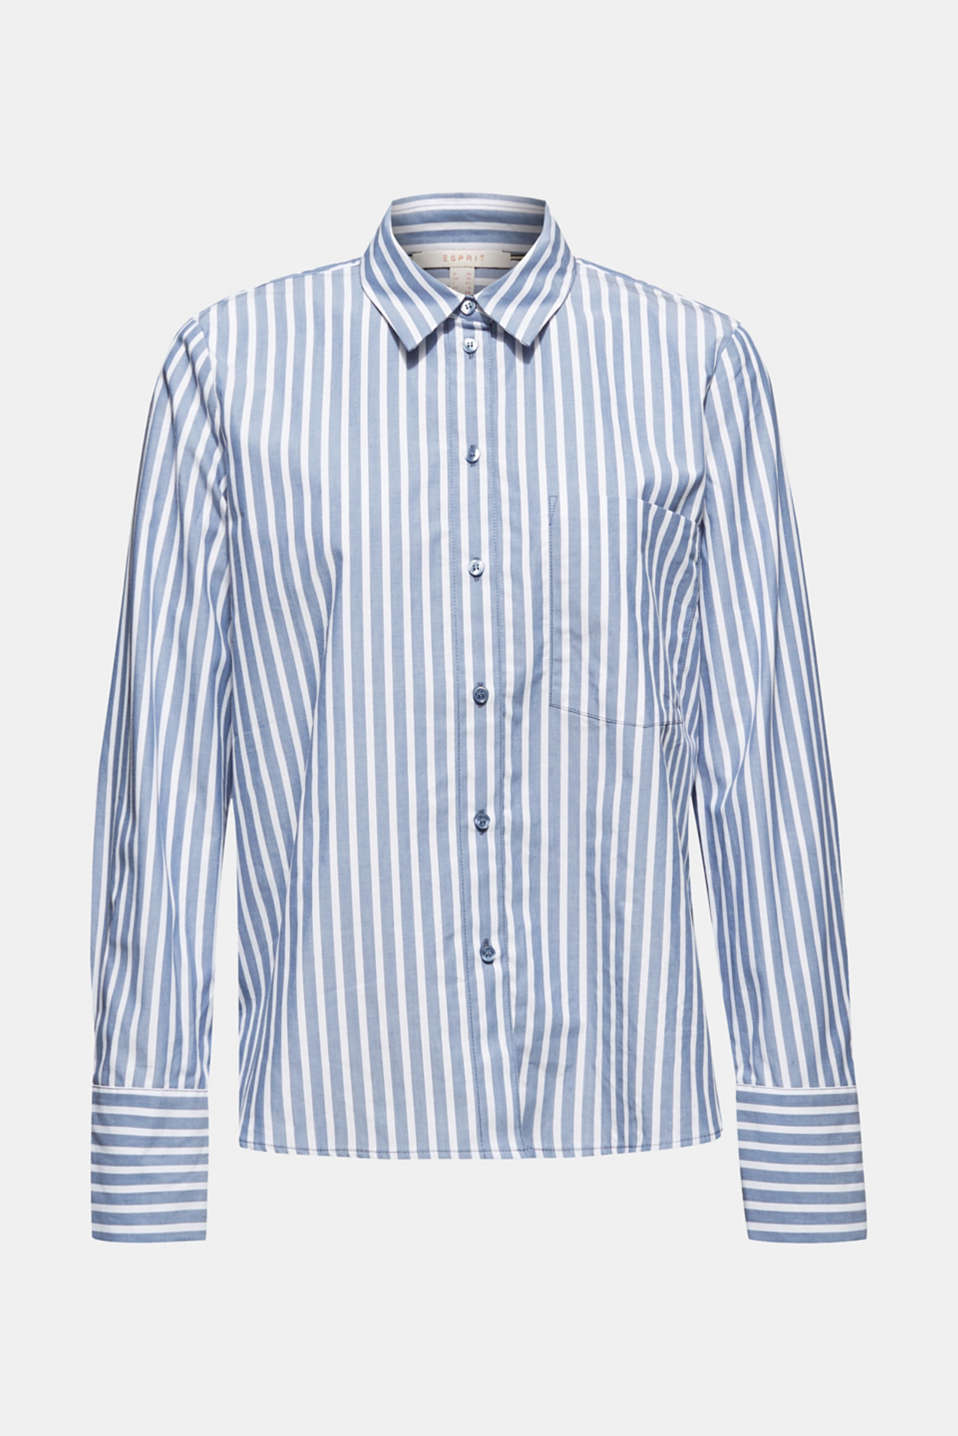 Blouse with stripes, 100% cotton, BLUE, detail image number 7